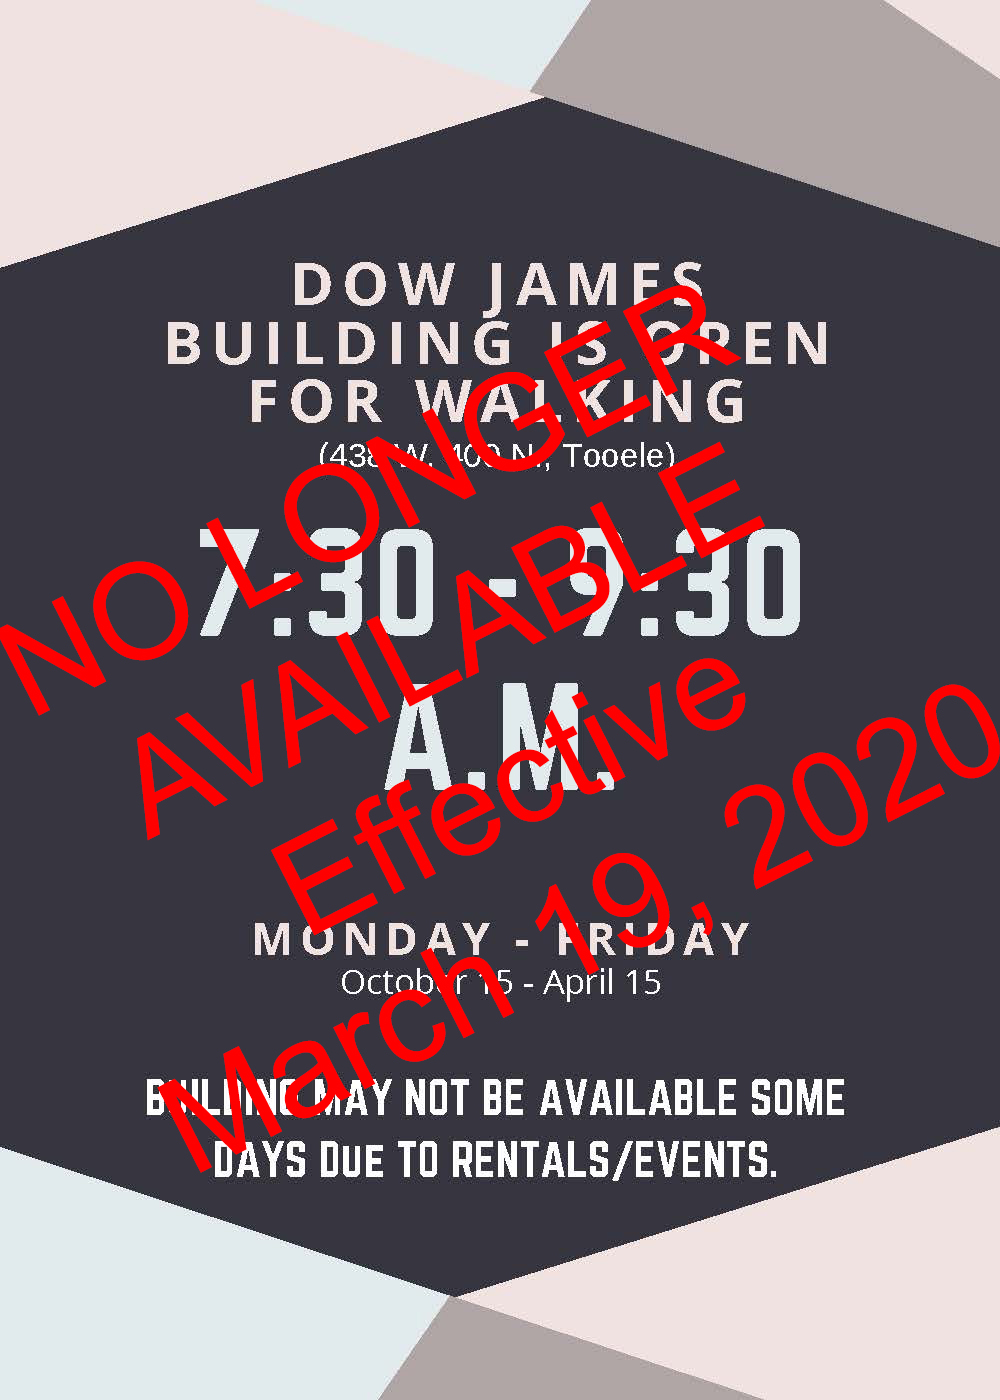 Dow James Building is Open for Walking - No Longer Available - Effective March 2020